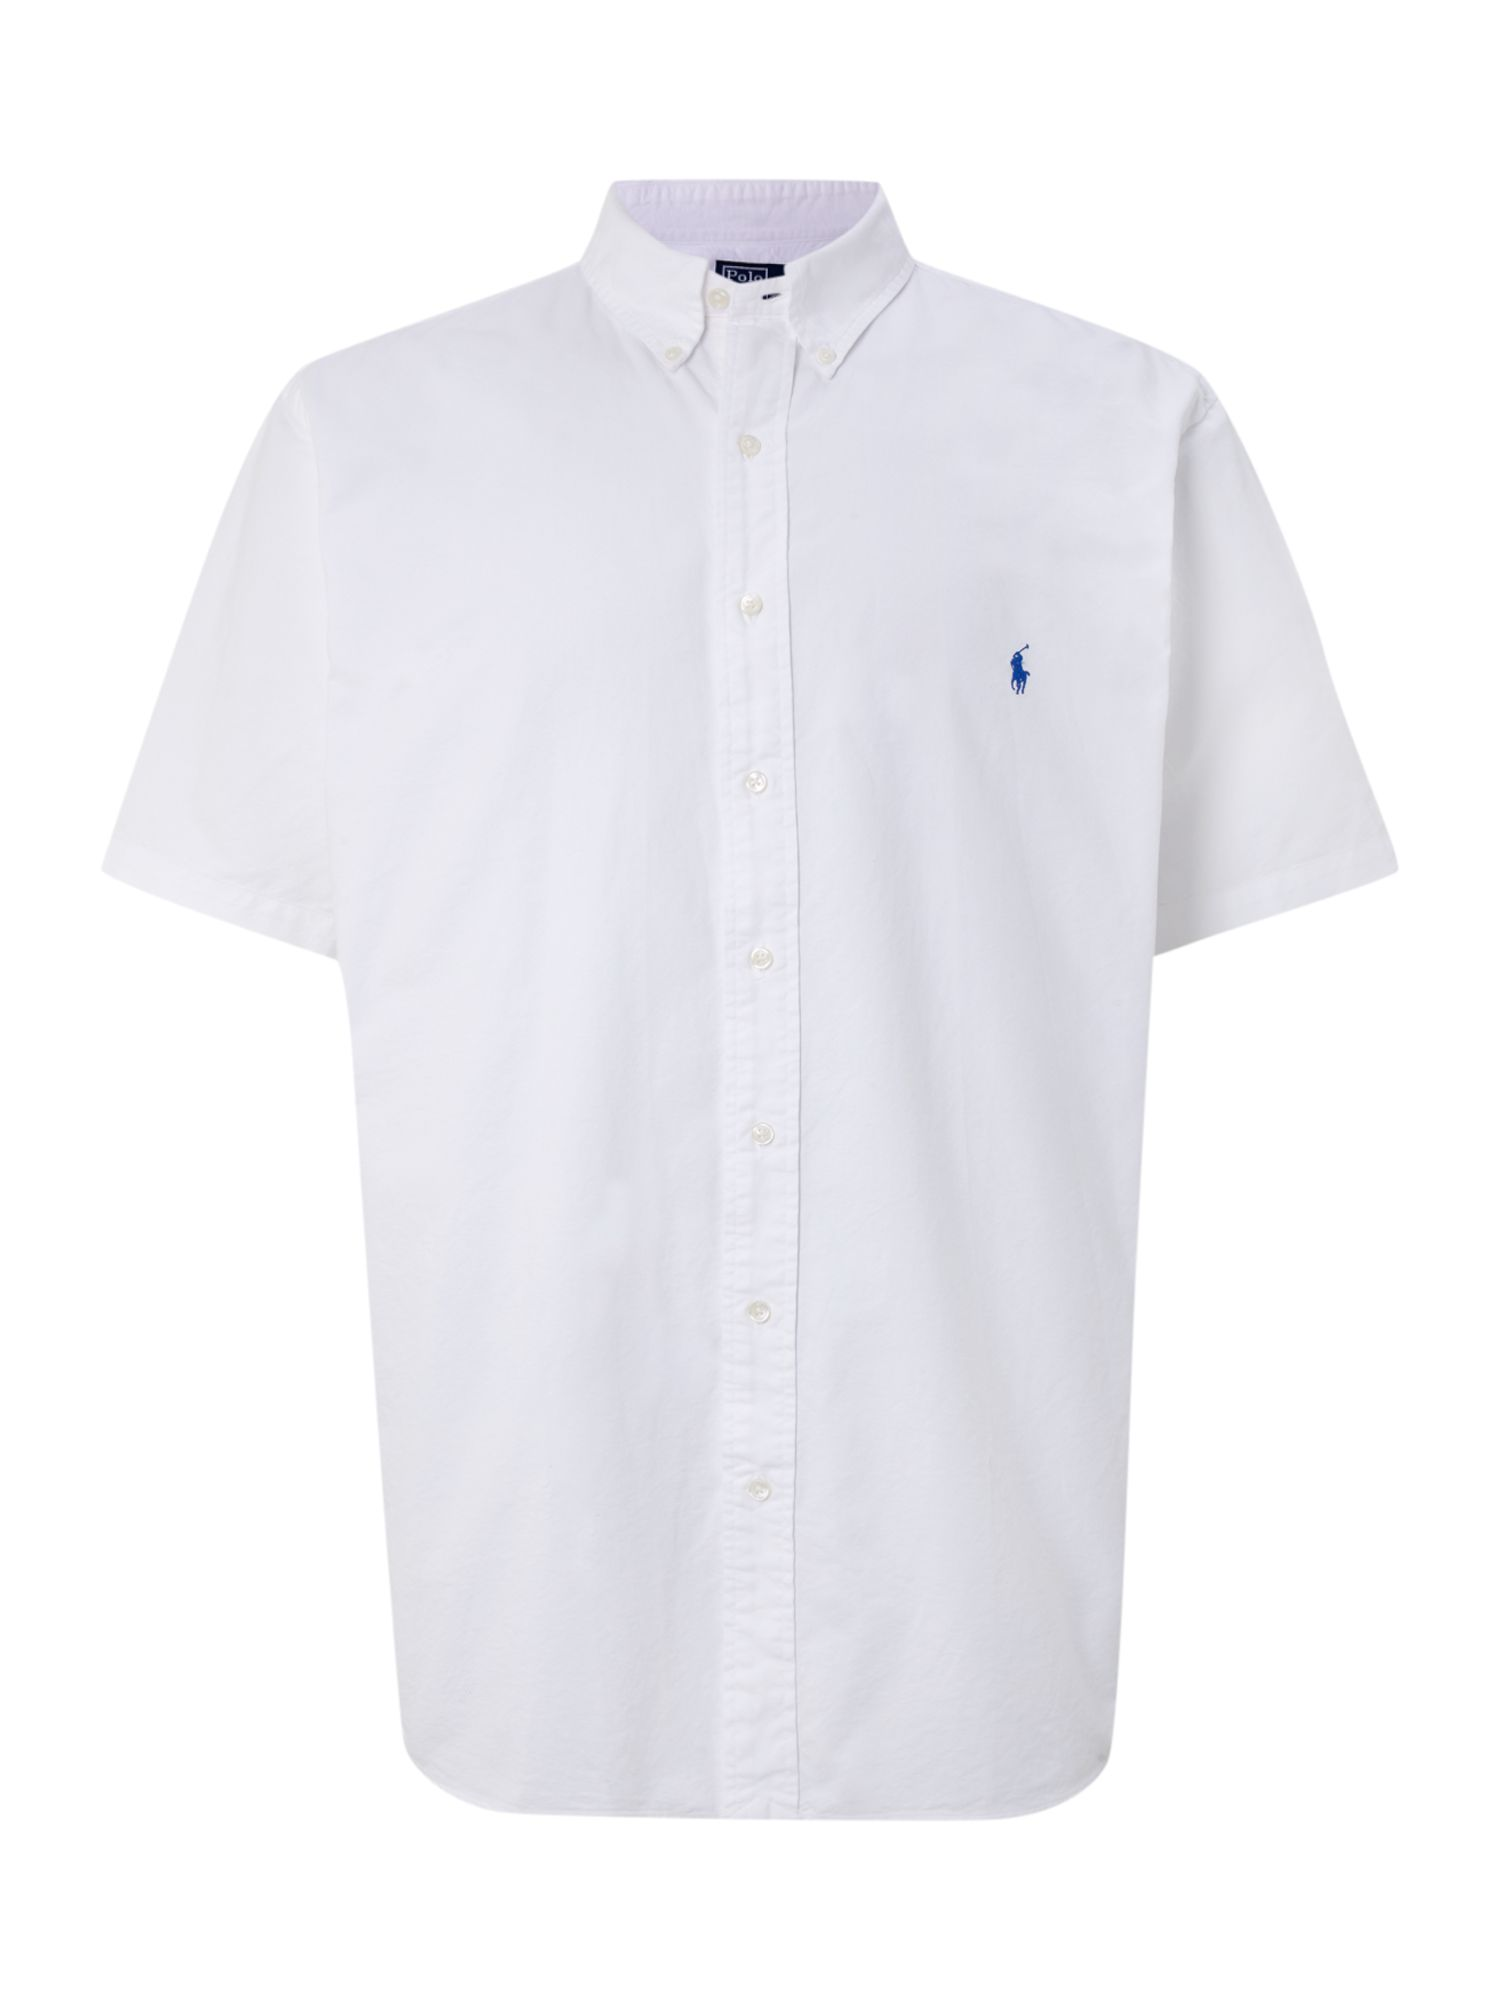 Polo ralph lauren big and tall classic short sleeved shirt for Big and tall polo shirts on sale